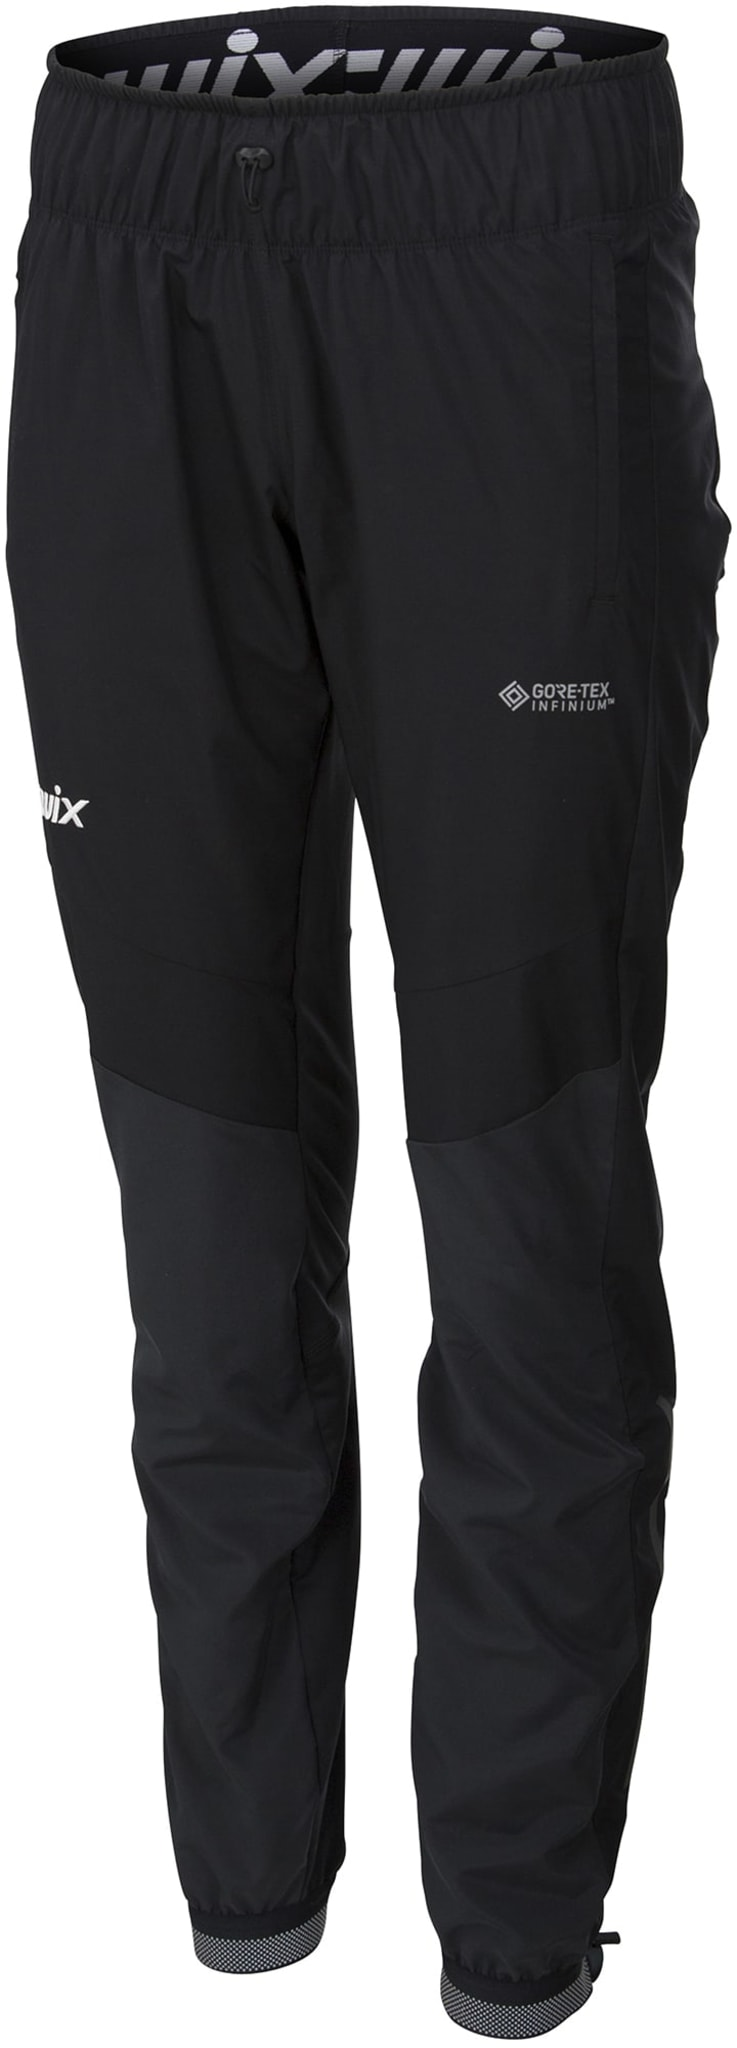 Evolution Gore-Tex Infinium Pants W